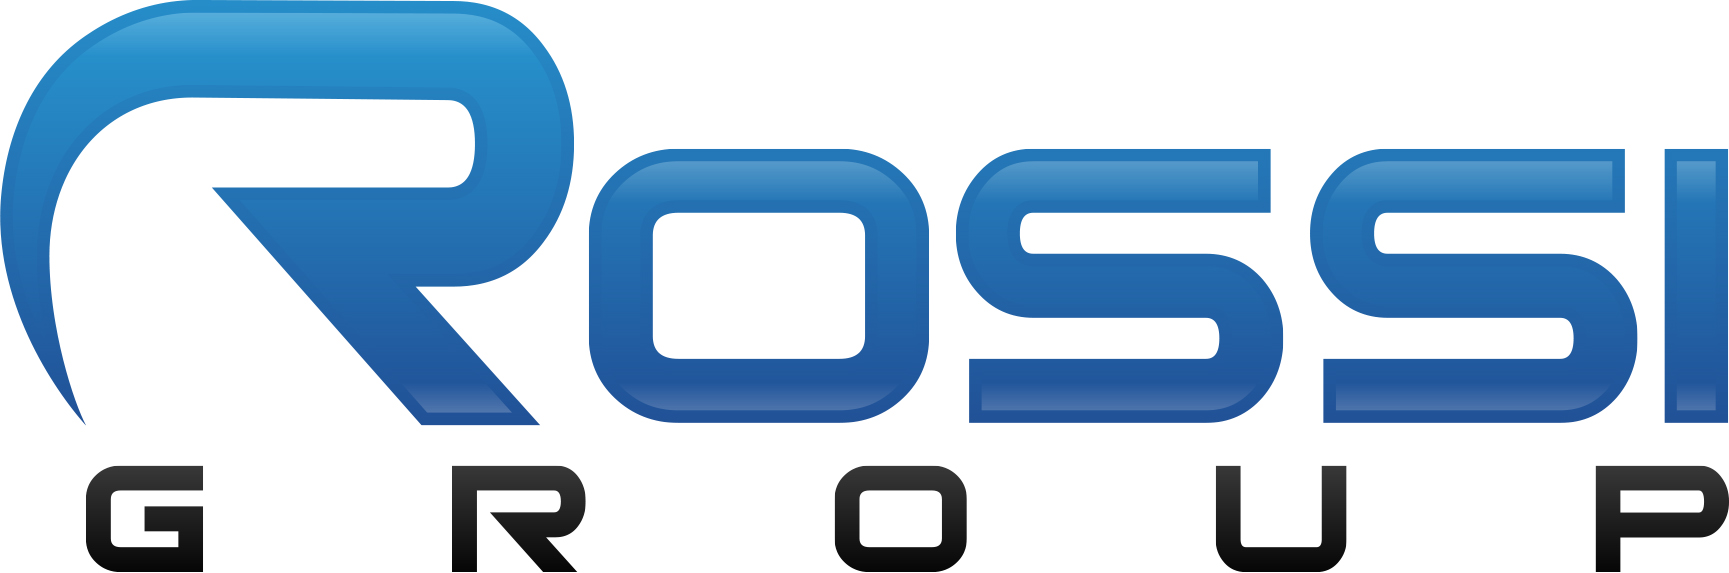 Rossi Group S.r.l.